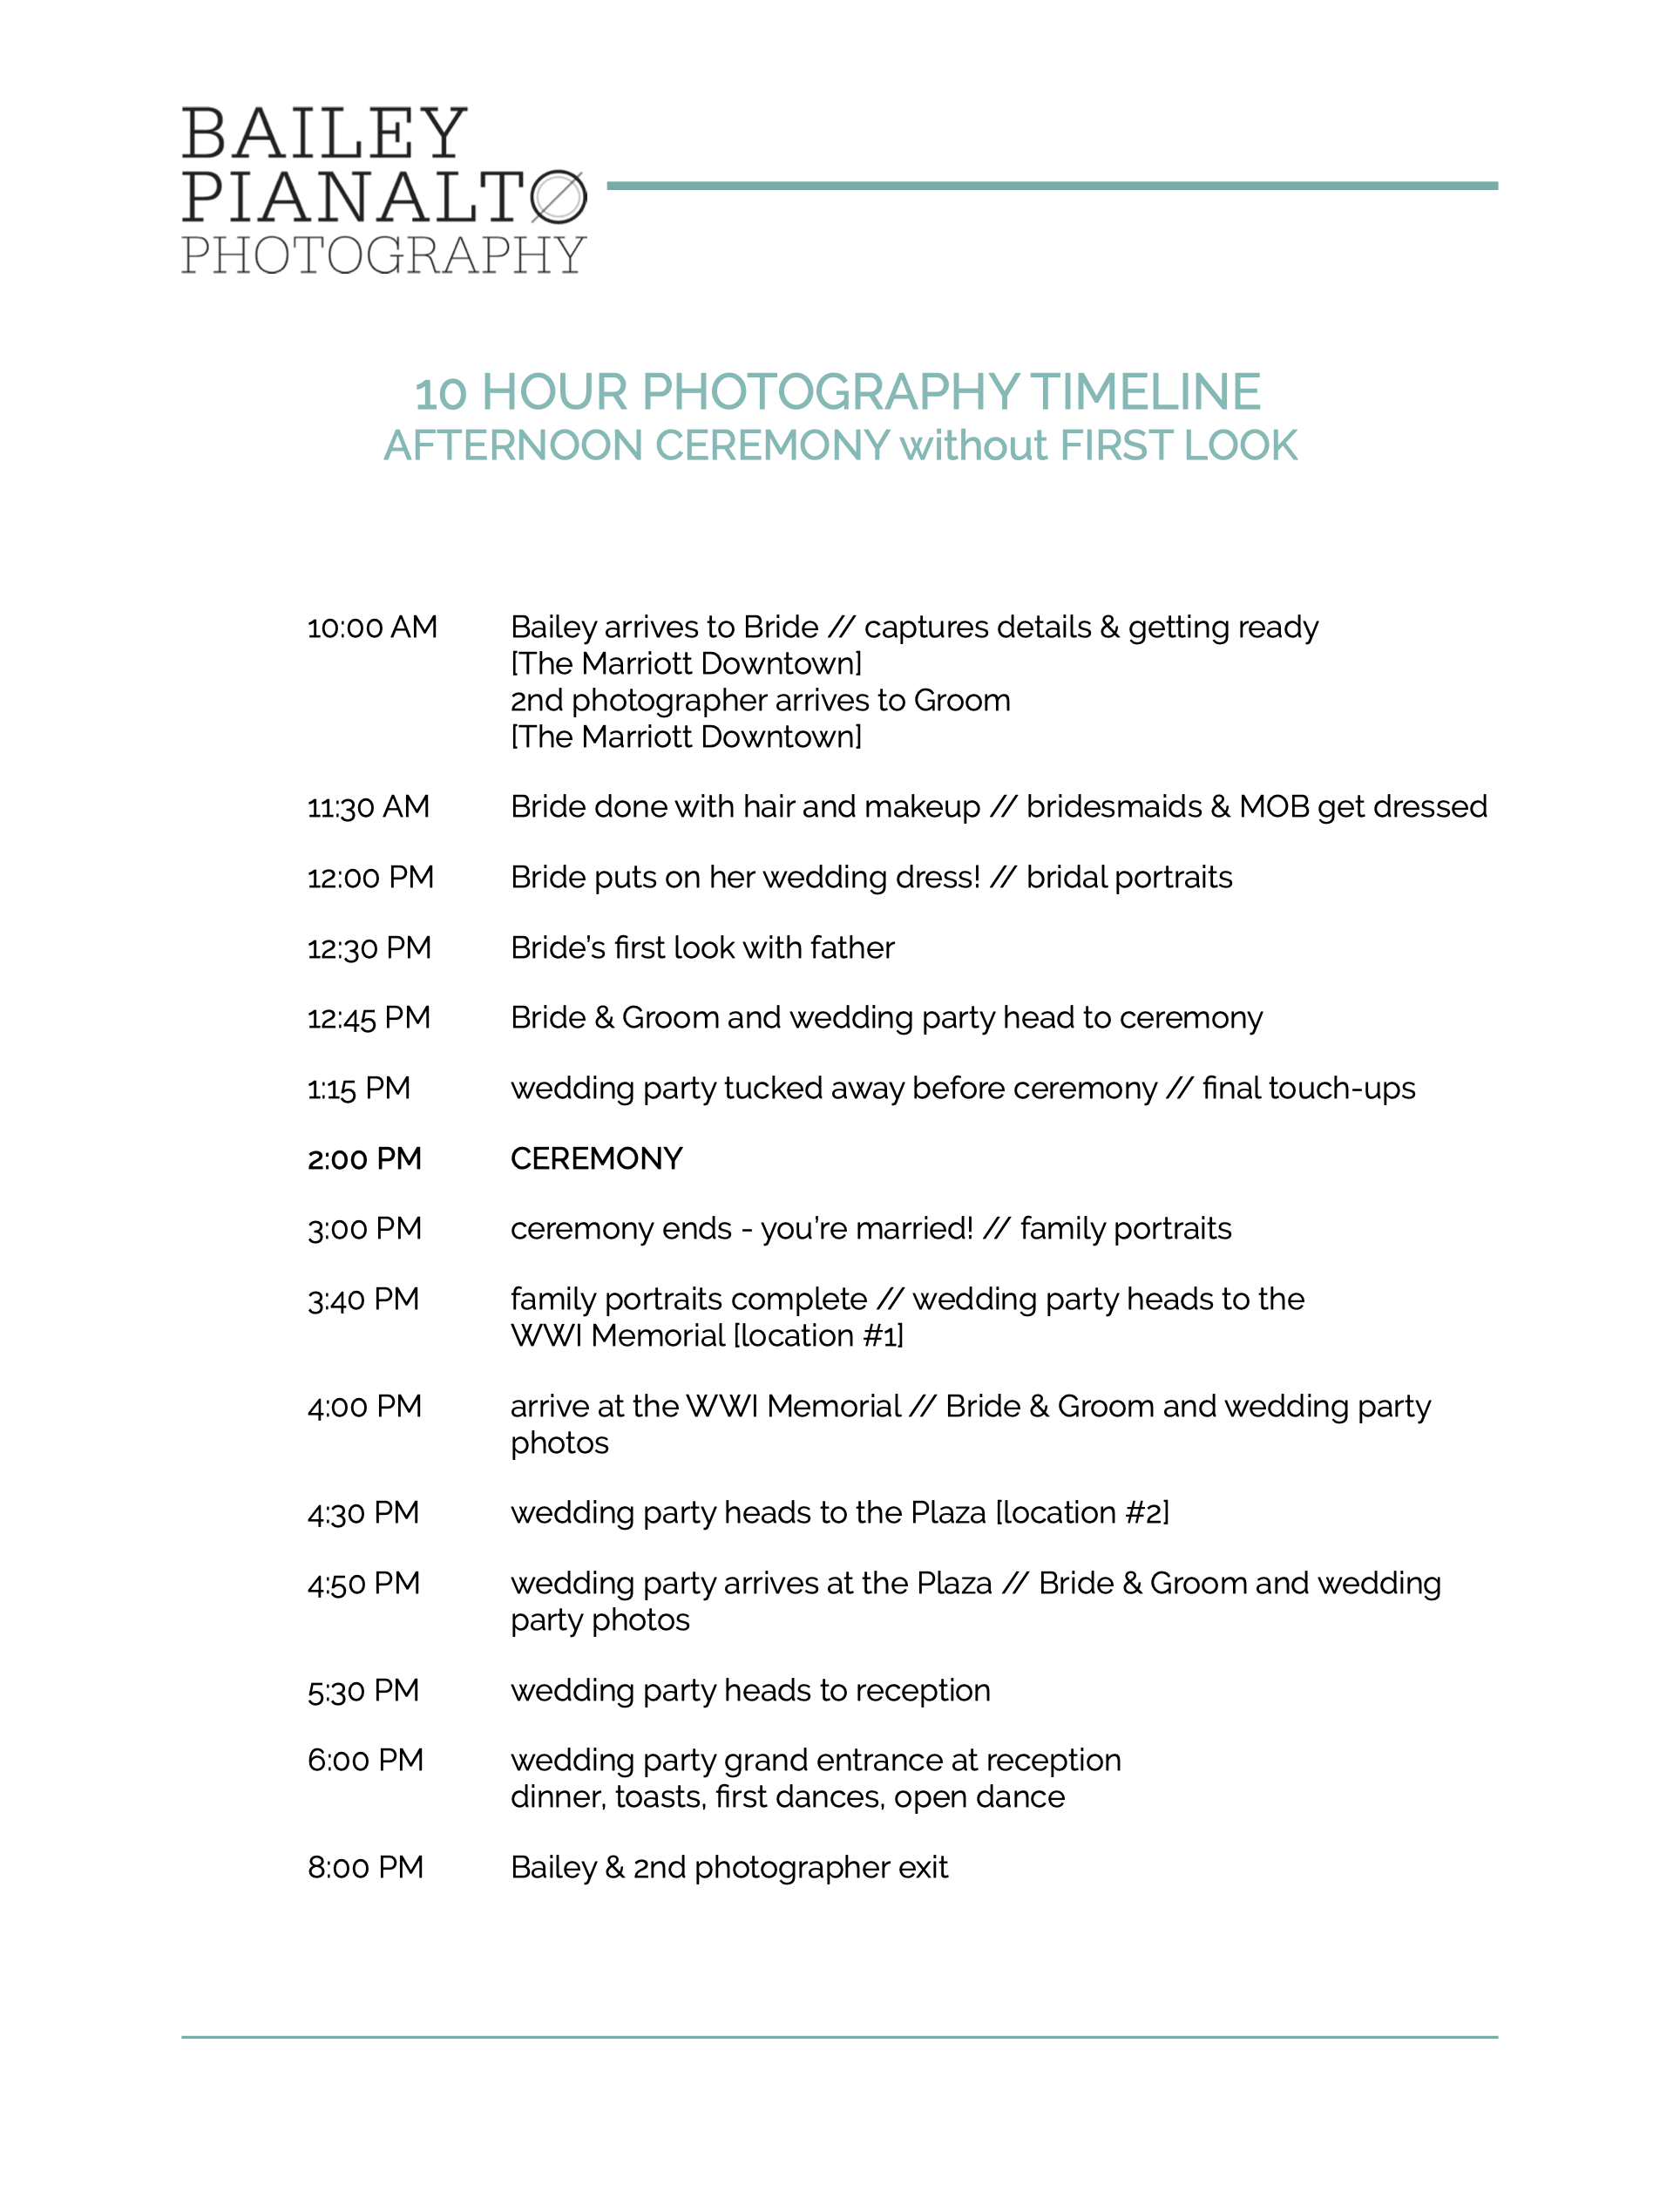 Tips and Tricks to Draft Your Perfect Wedding Day Photography Timeline